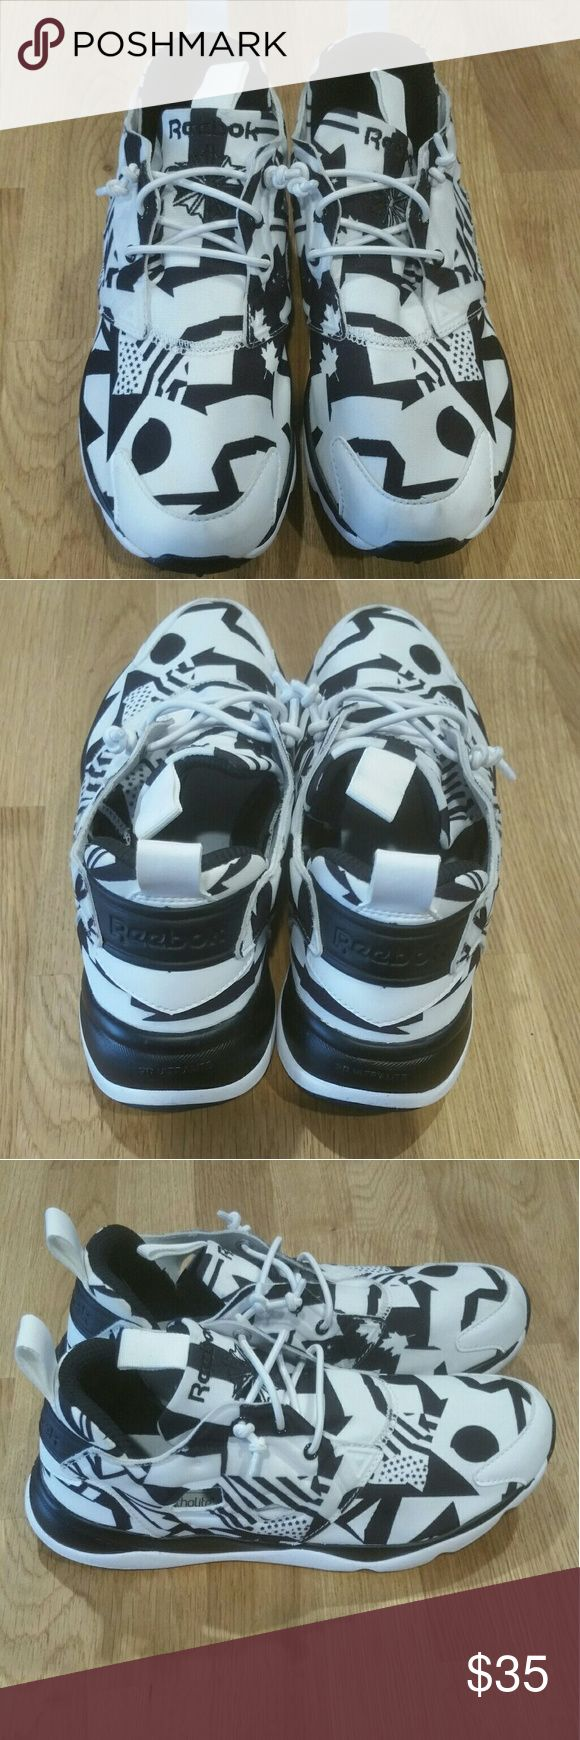 Reebok Trainers Excellent condition REEBOK Classic Ortholite Trainers retro print Very comfortable trainers worn once! Perfect for running and cardio or a solid lift at the gym! Reebok Shoes Sneakers